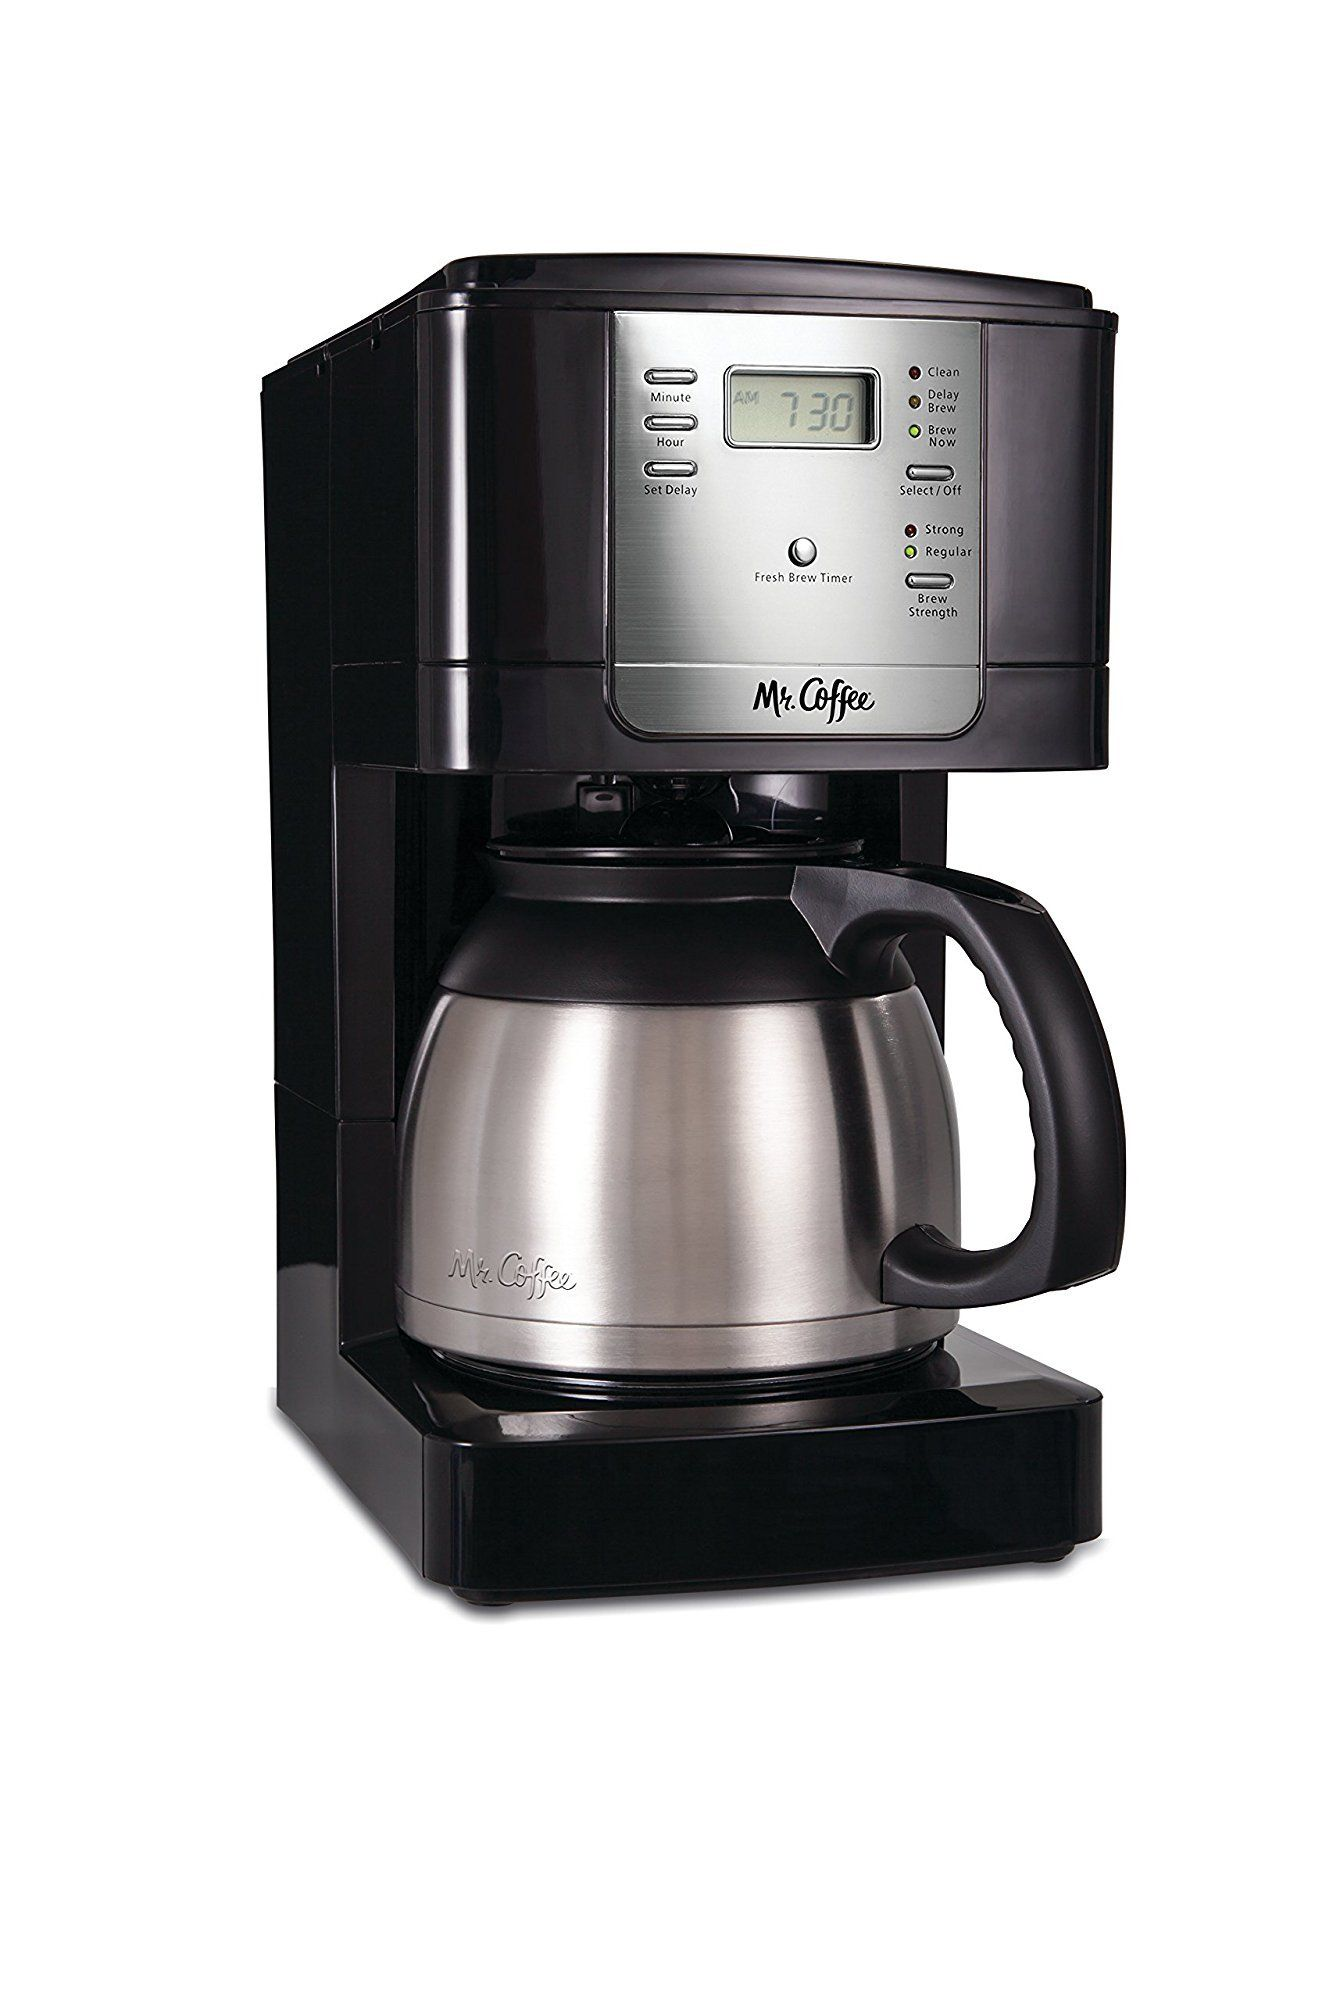 Mr. Coffee JWTX85 8Cup Thermal Coffeemaker Stainless Steel